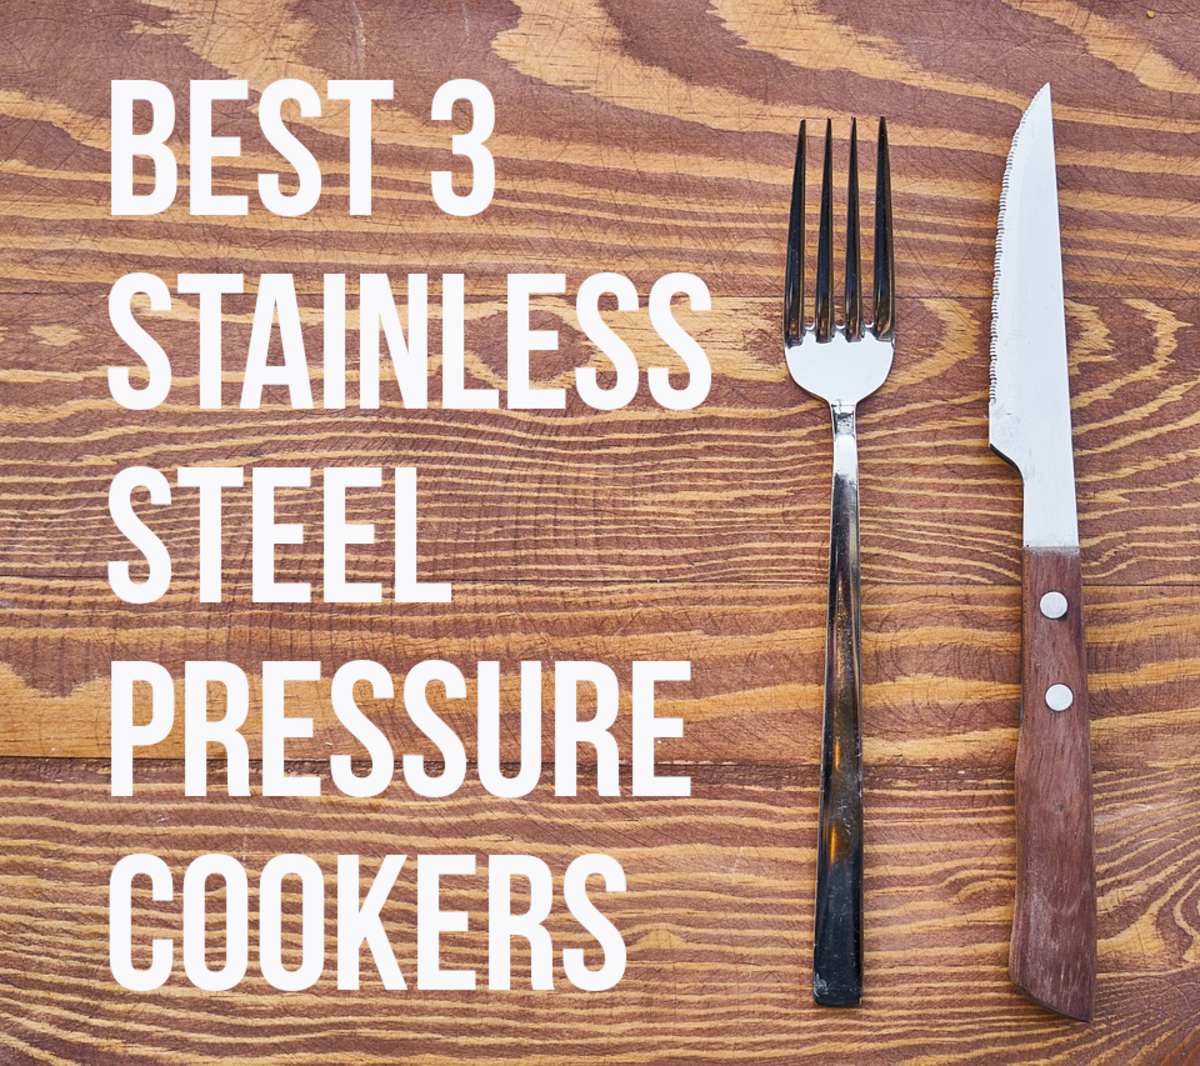 Here are my recommendations for the top three stainless steel pressure cookers